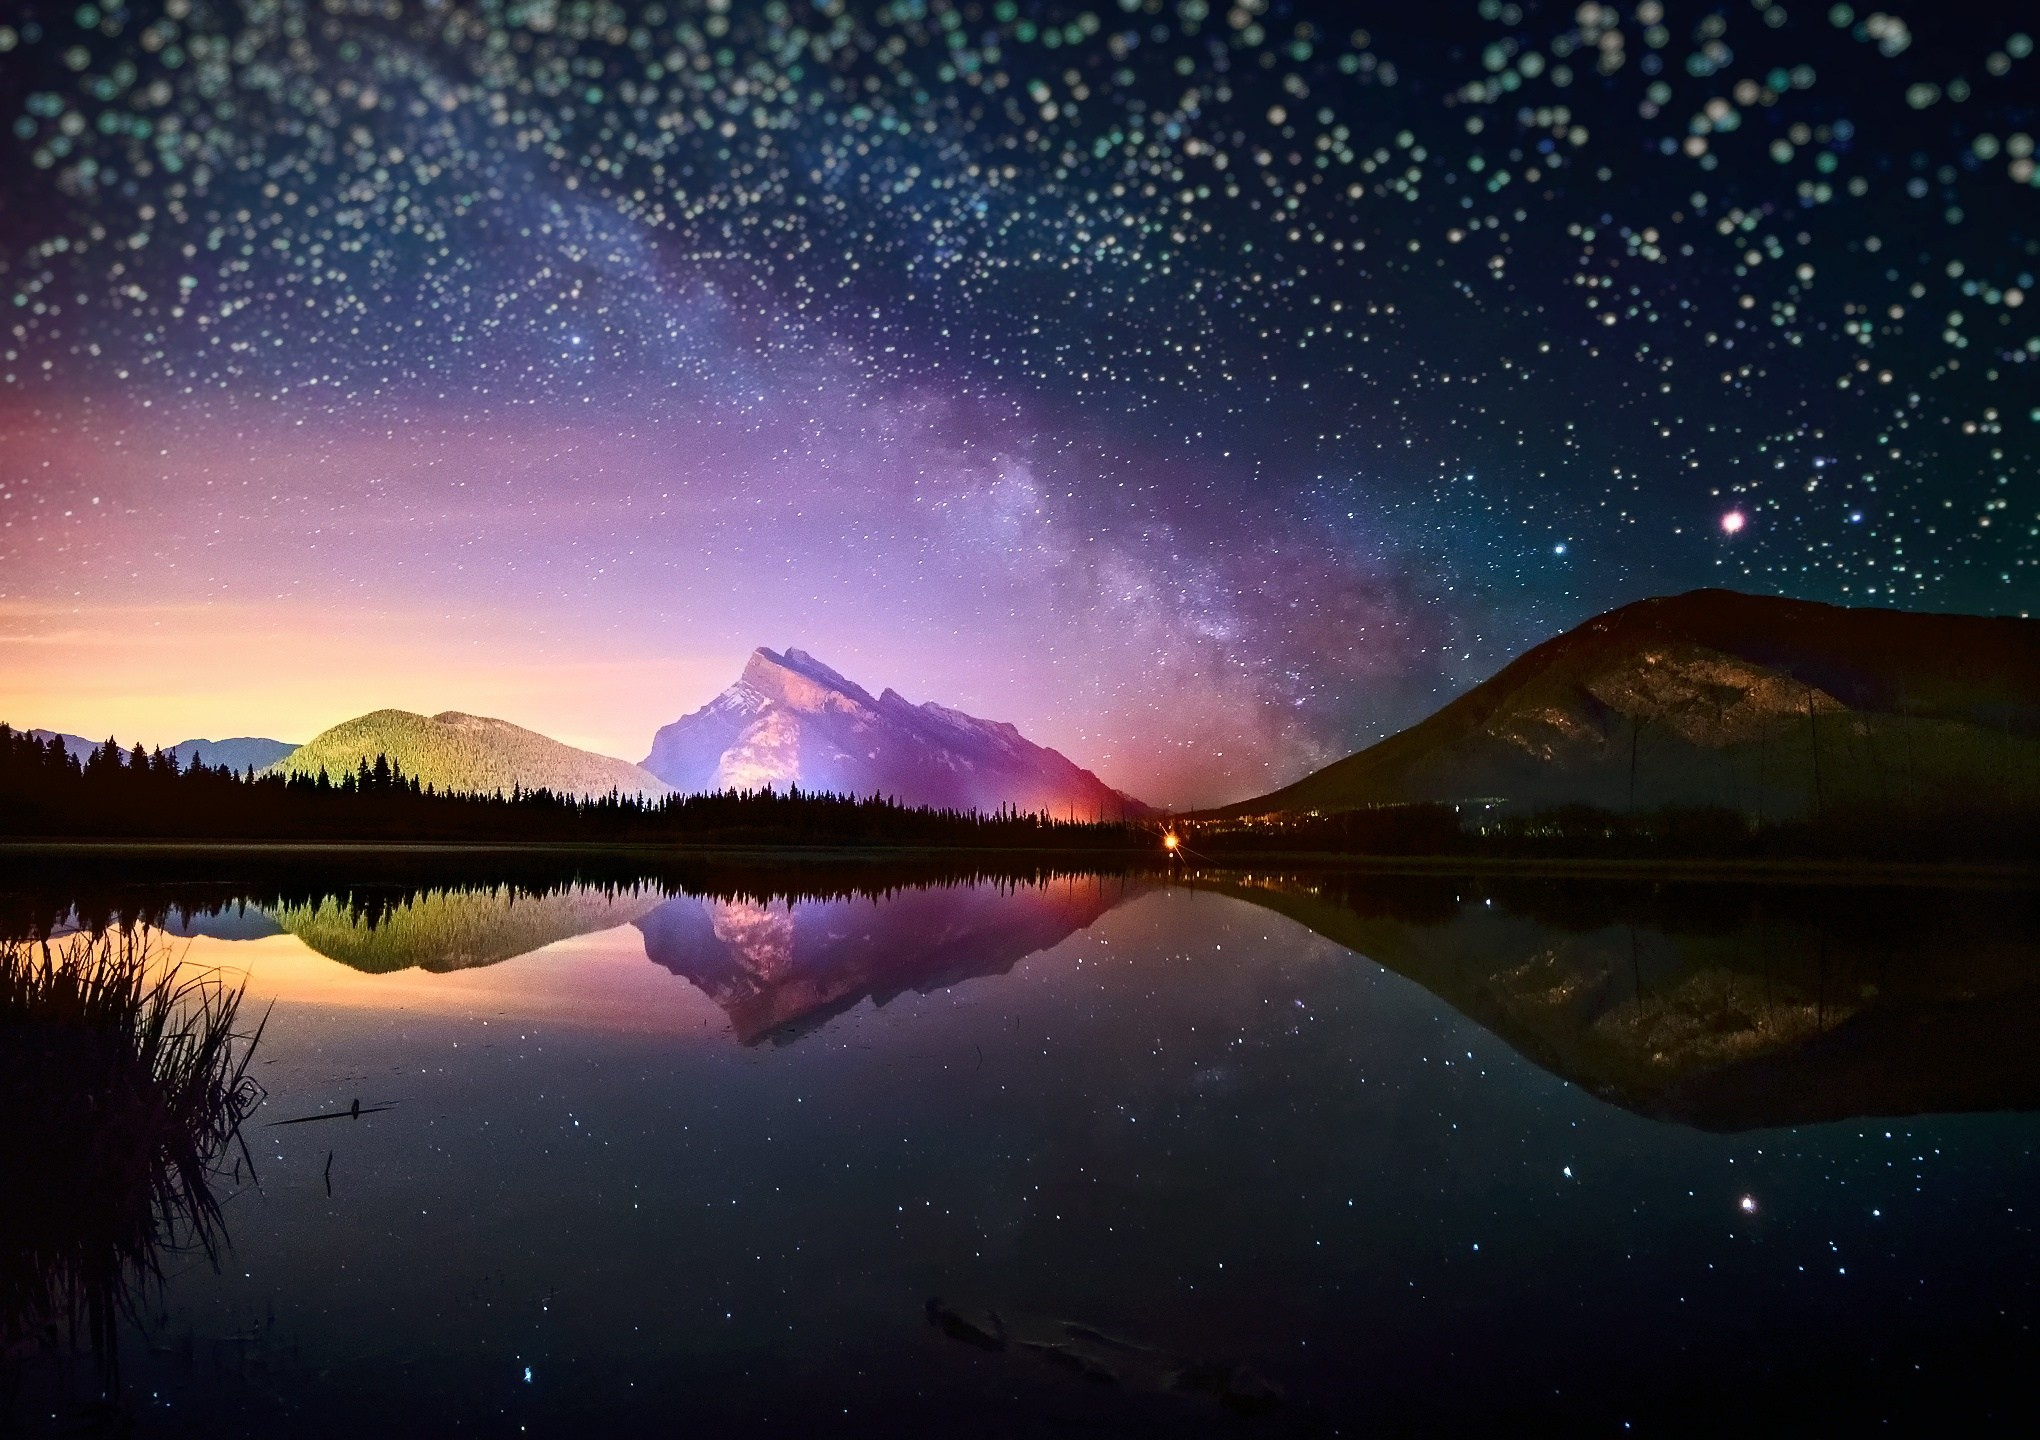 289 Starry Sky Hd Wallpapers Backgrounds Wallpaper Abyss